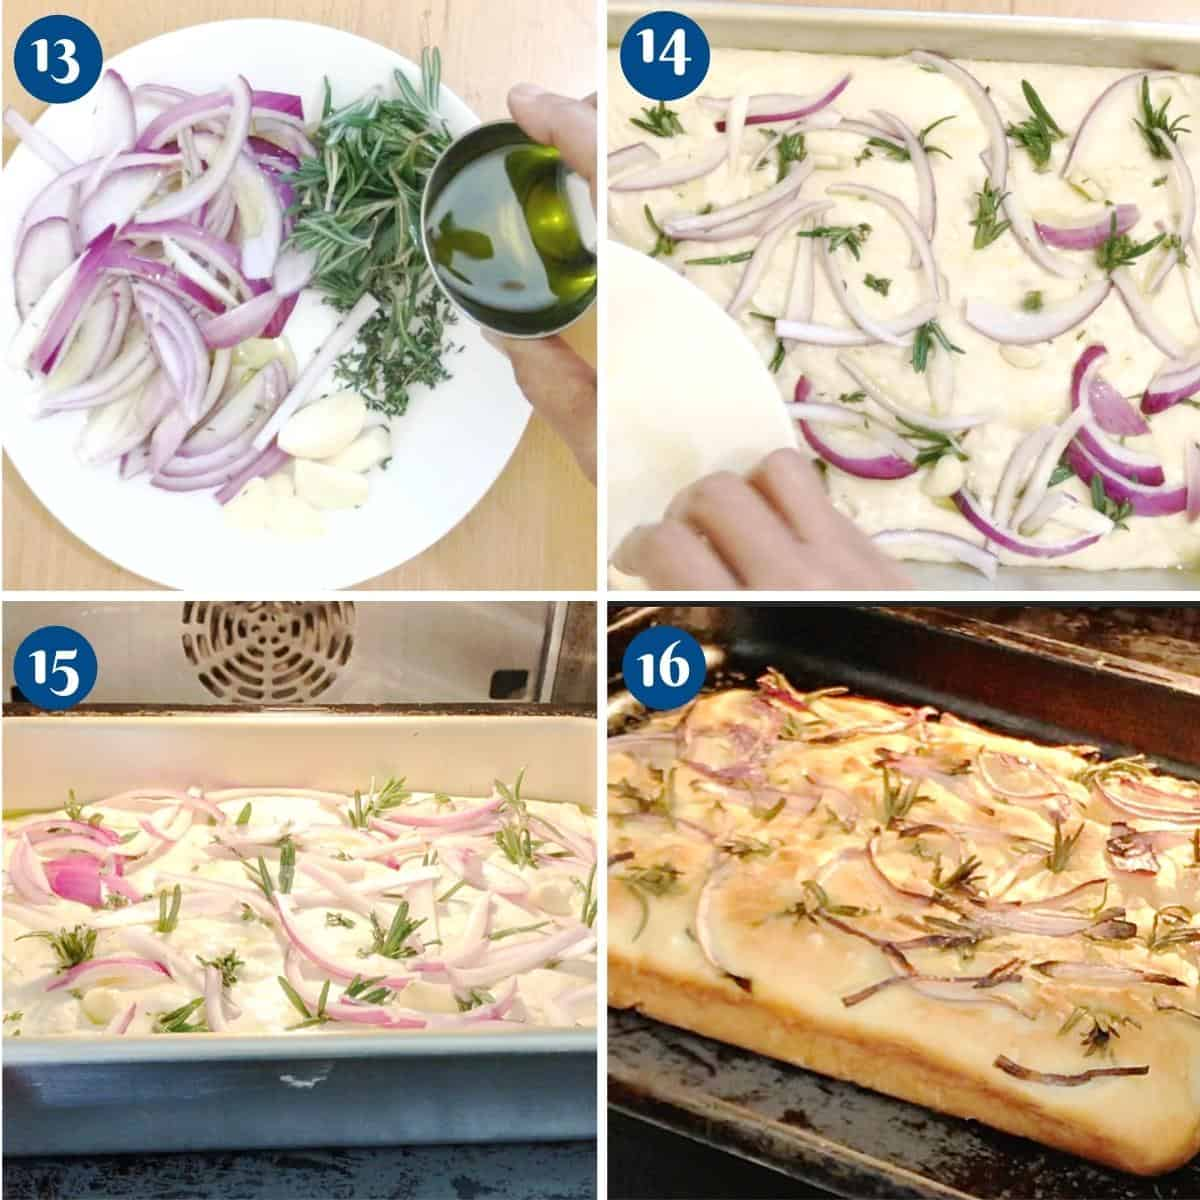 Progress pictures collage adding onion and rosemary on focaccia dough.